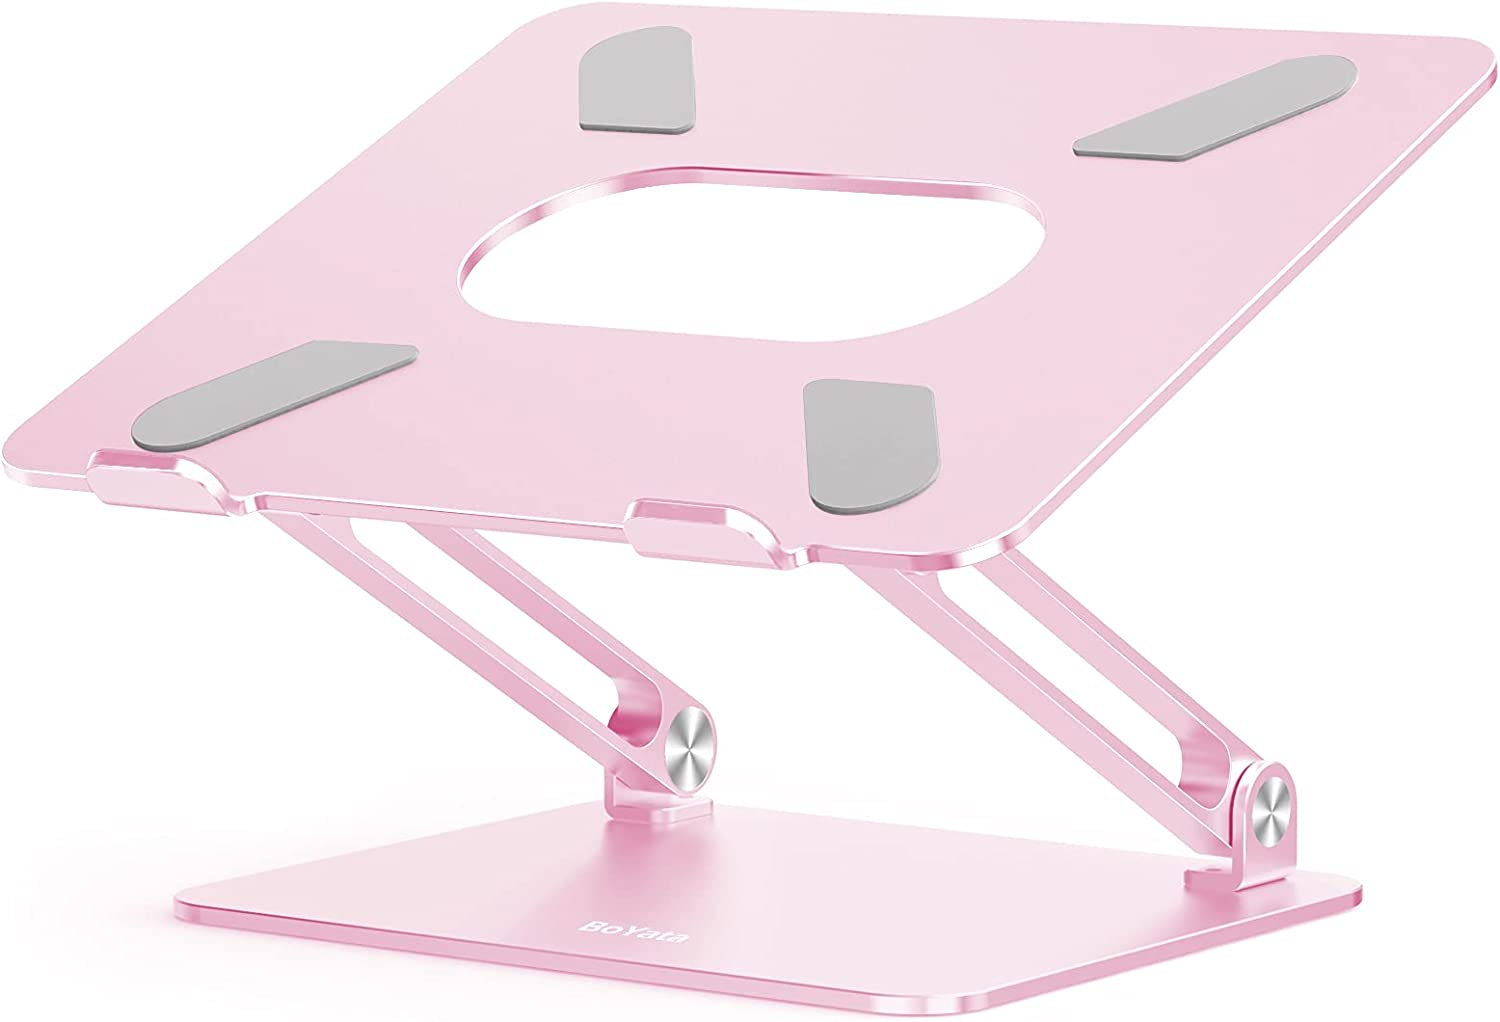 Boyata Laptop Stand, Adjustable Ergonomic Laptop Holder, Aluminium Alloy Notebook Stand Compatible for MacBook Pro/Air, Dell XPS, Lenovo, Samsung Laptops Up to 17 inches-Pink